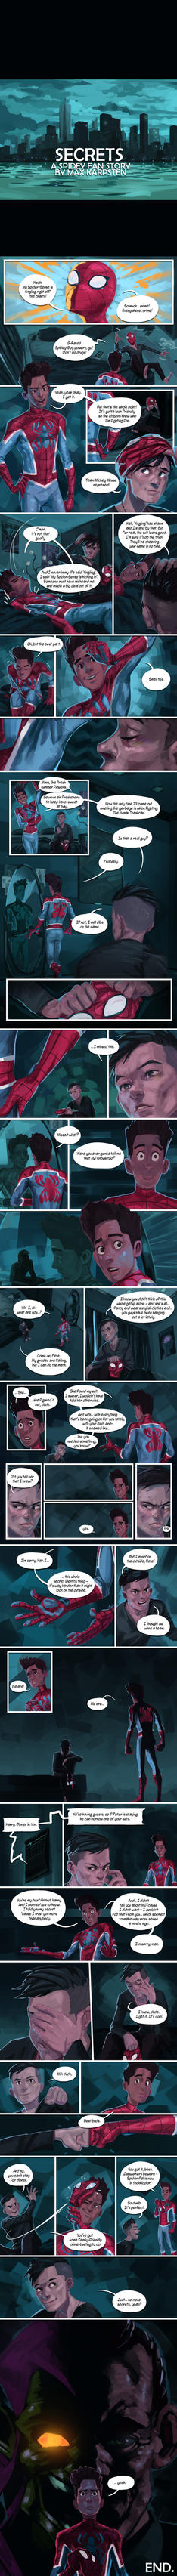 SECRETS - A Spidey Fan Story by Brakkenimation